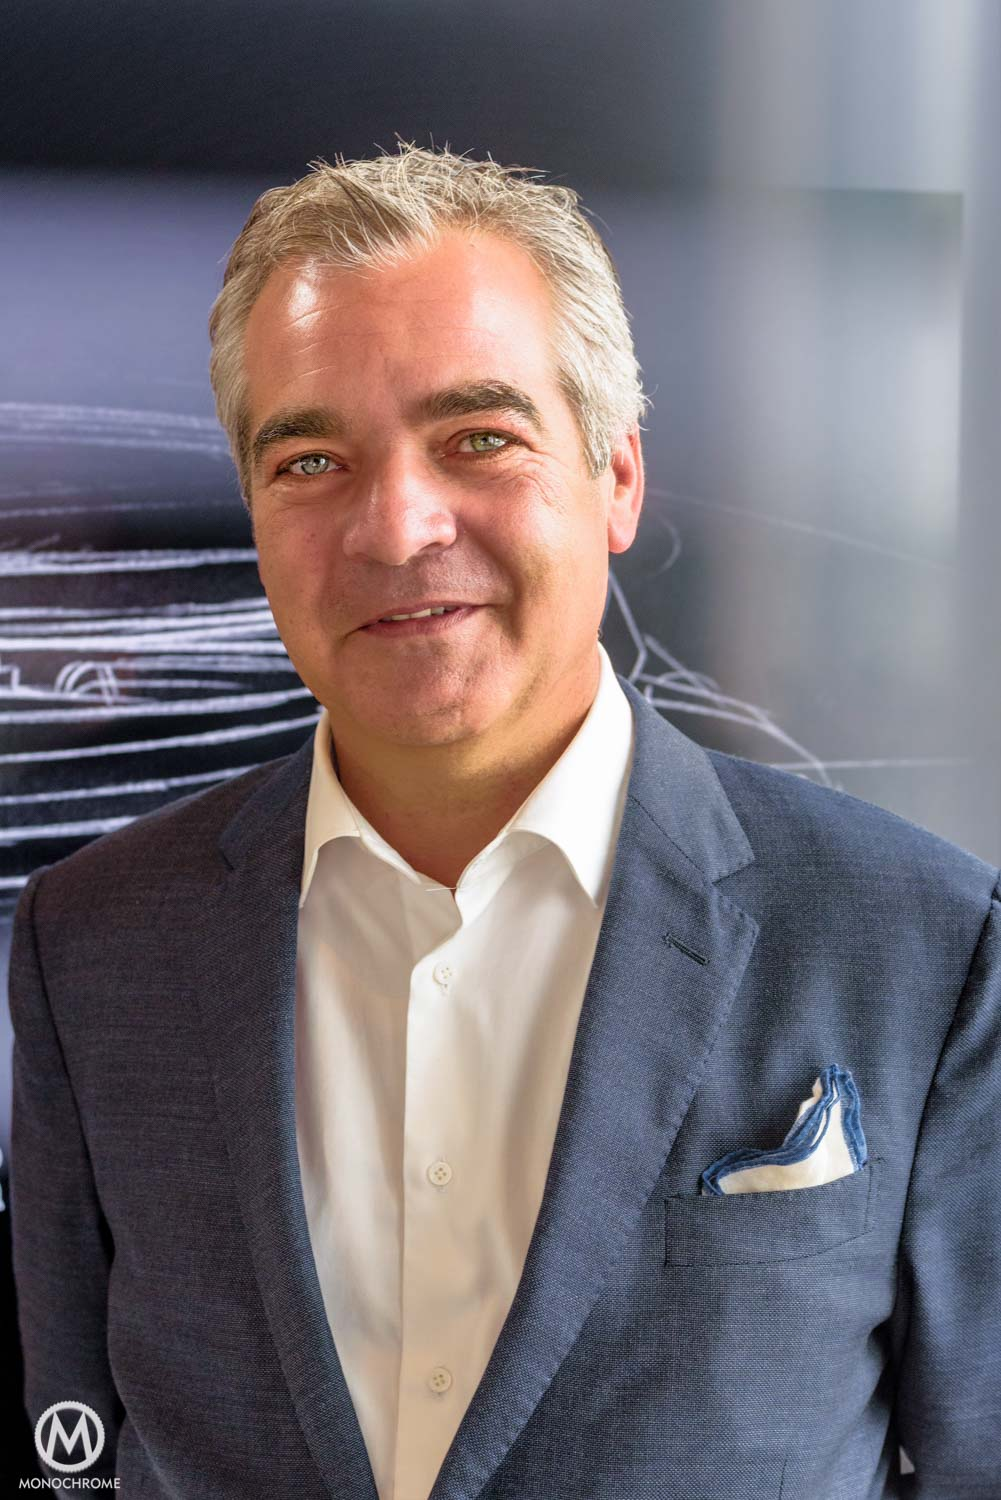 Our host Hans Dekkers, Brand manager Panerai Benelux and Scandinavia